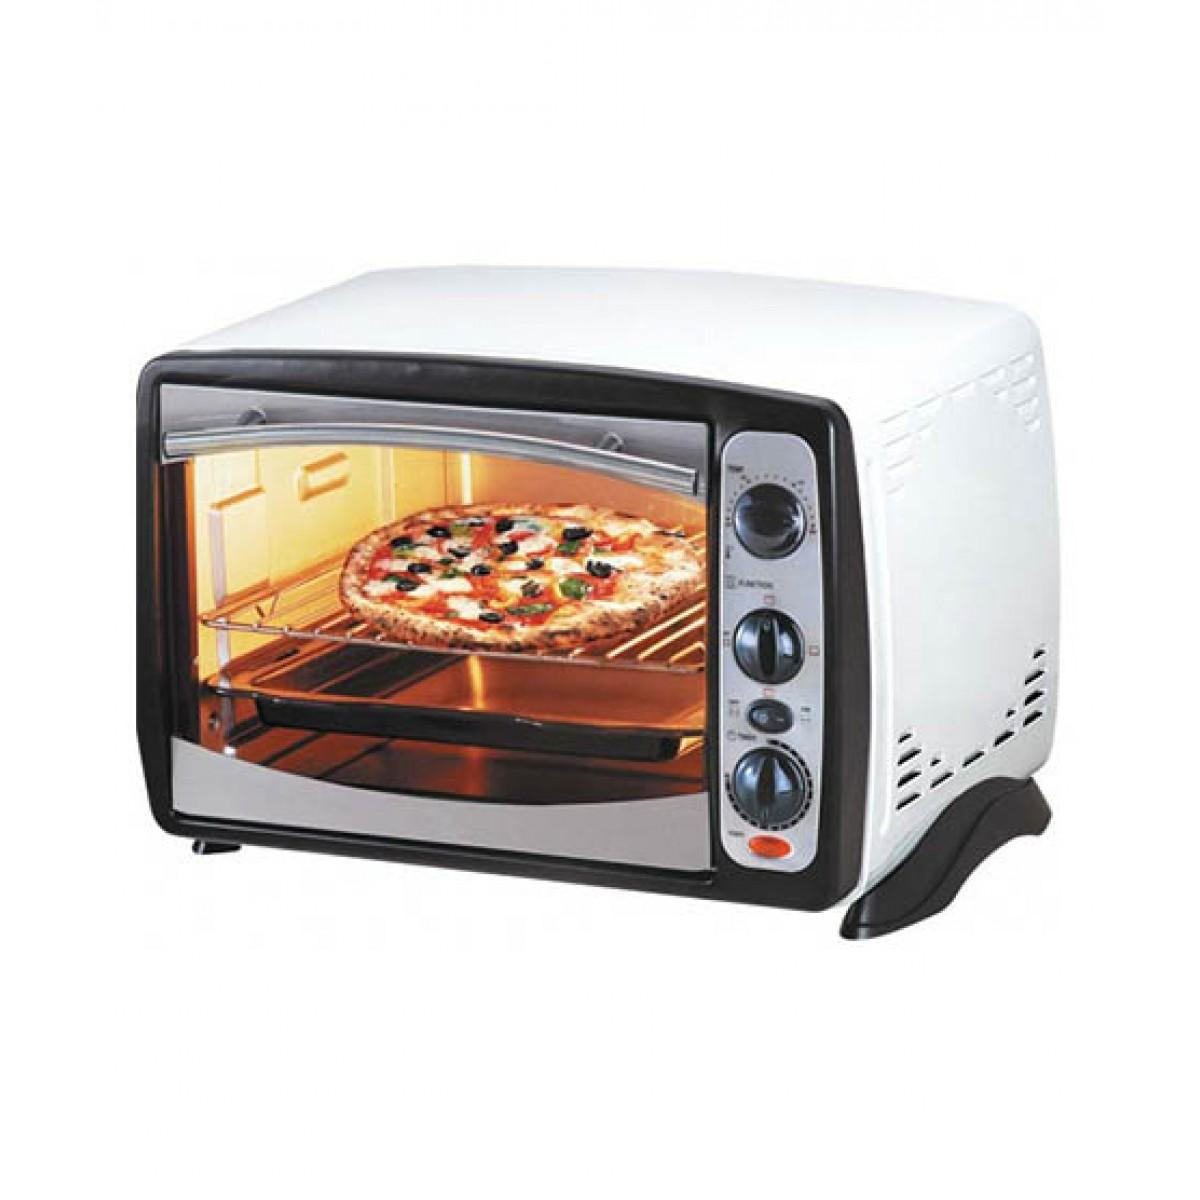 Anex Oven Toaster Price In Pakistan 2019 Electric Backing New Model Codes